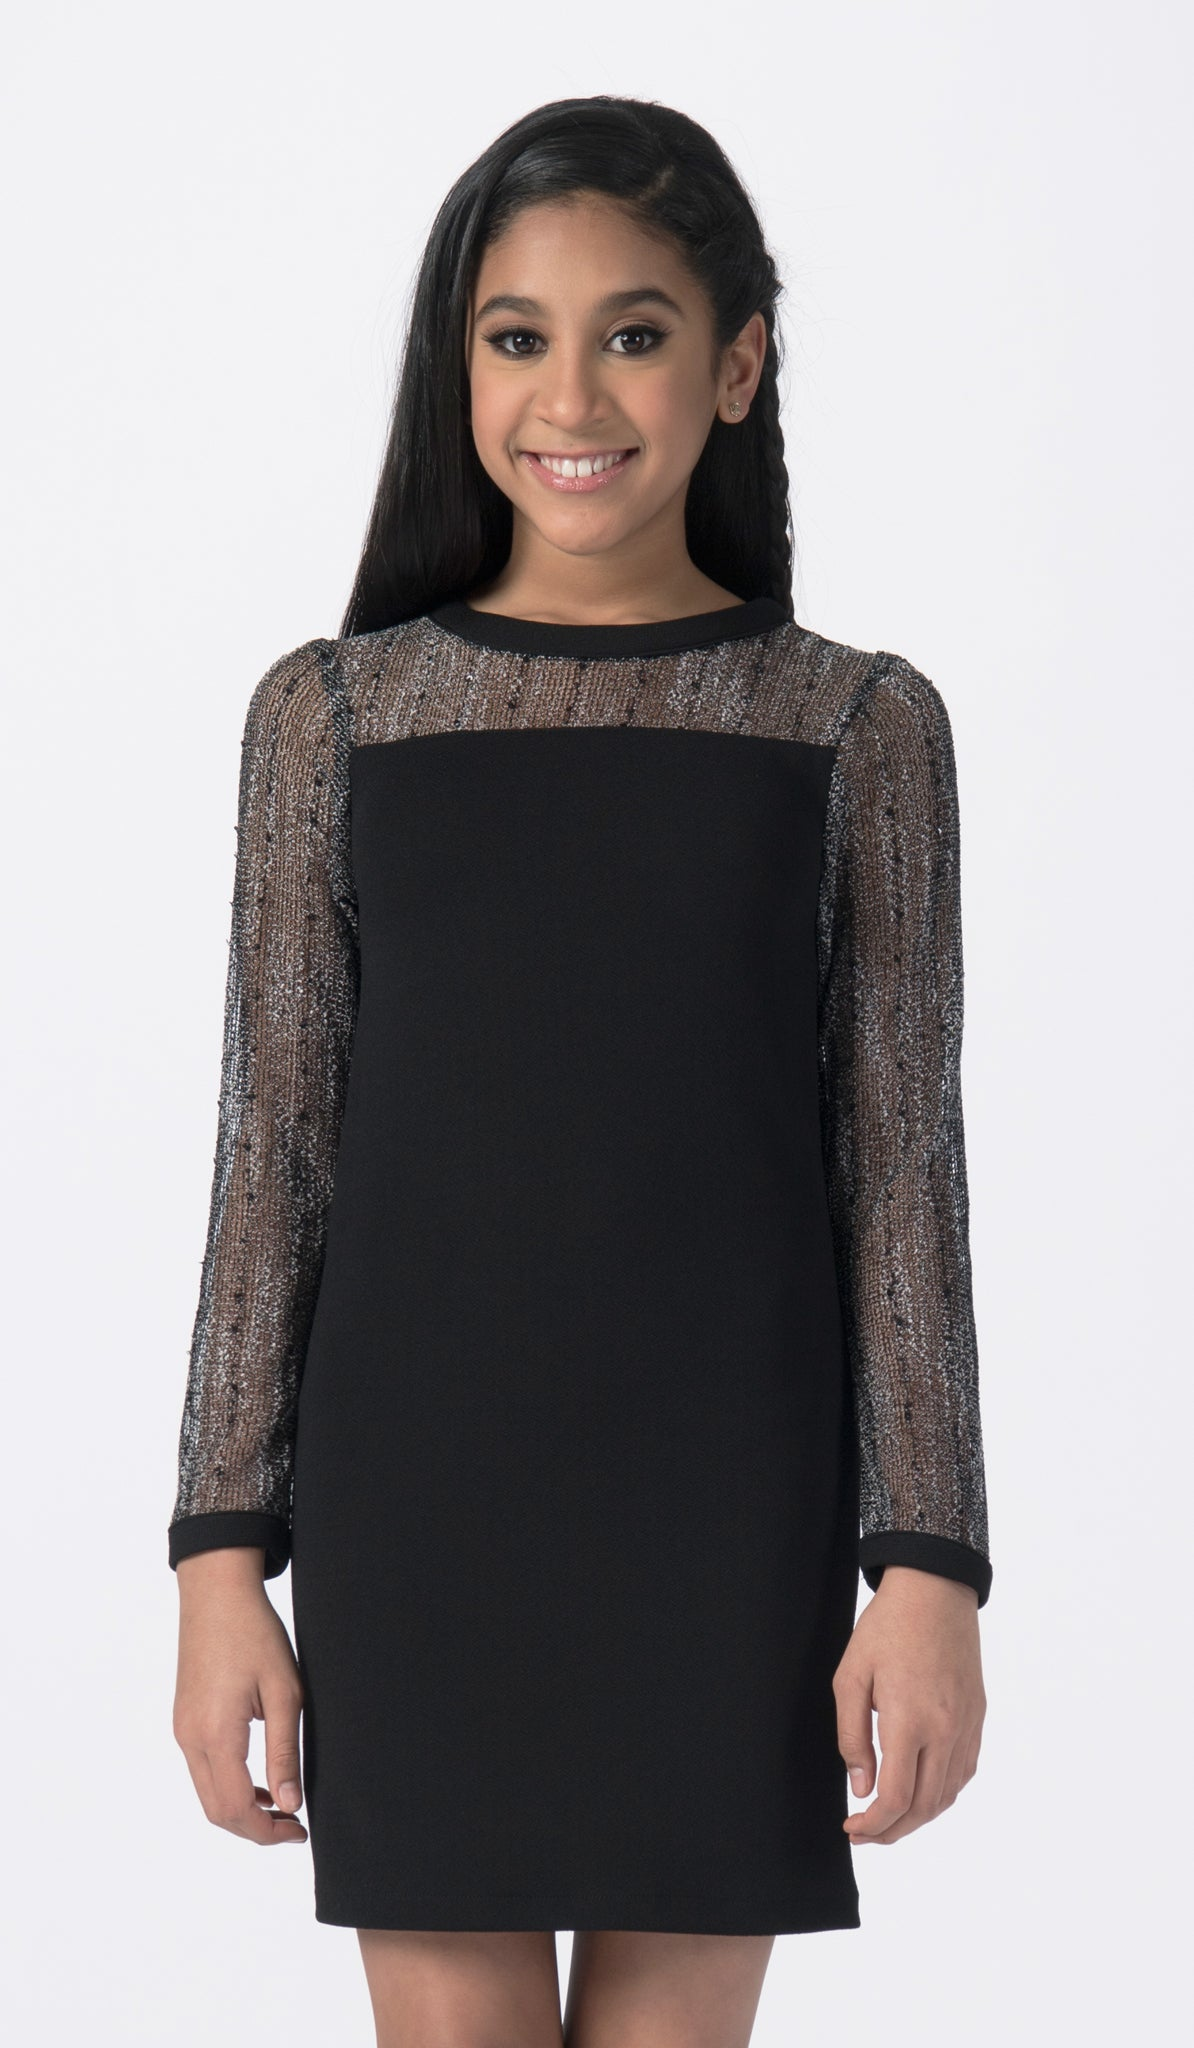 Black dress with mesh long sleeves and neckline mid view